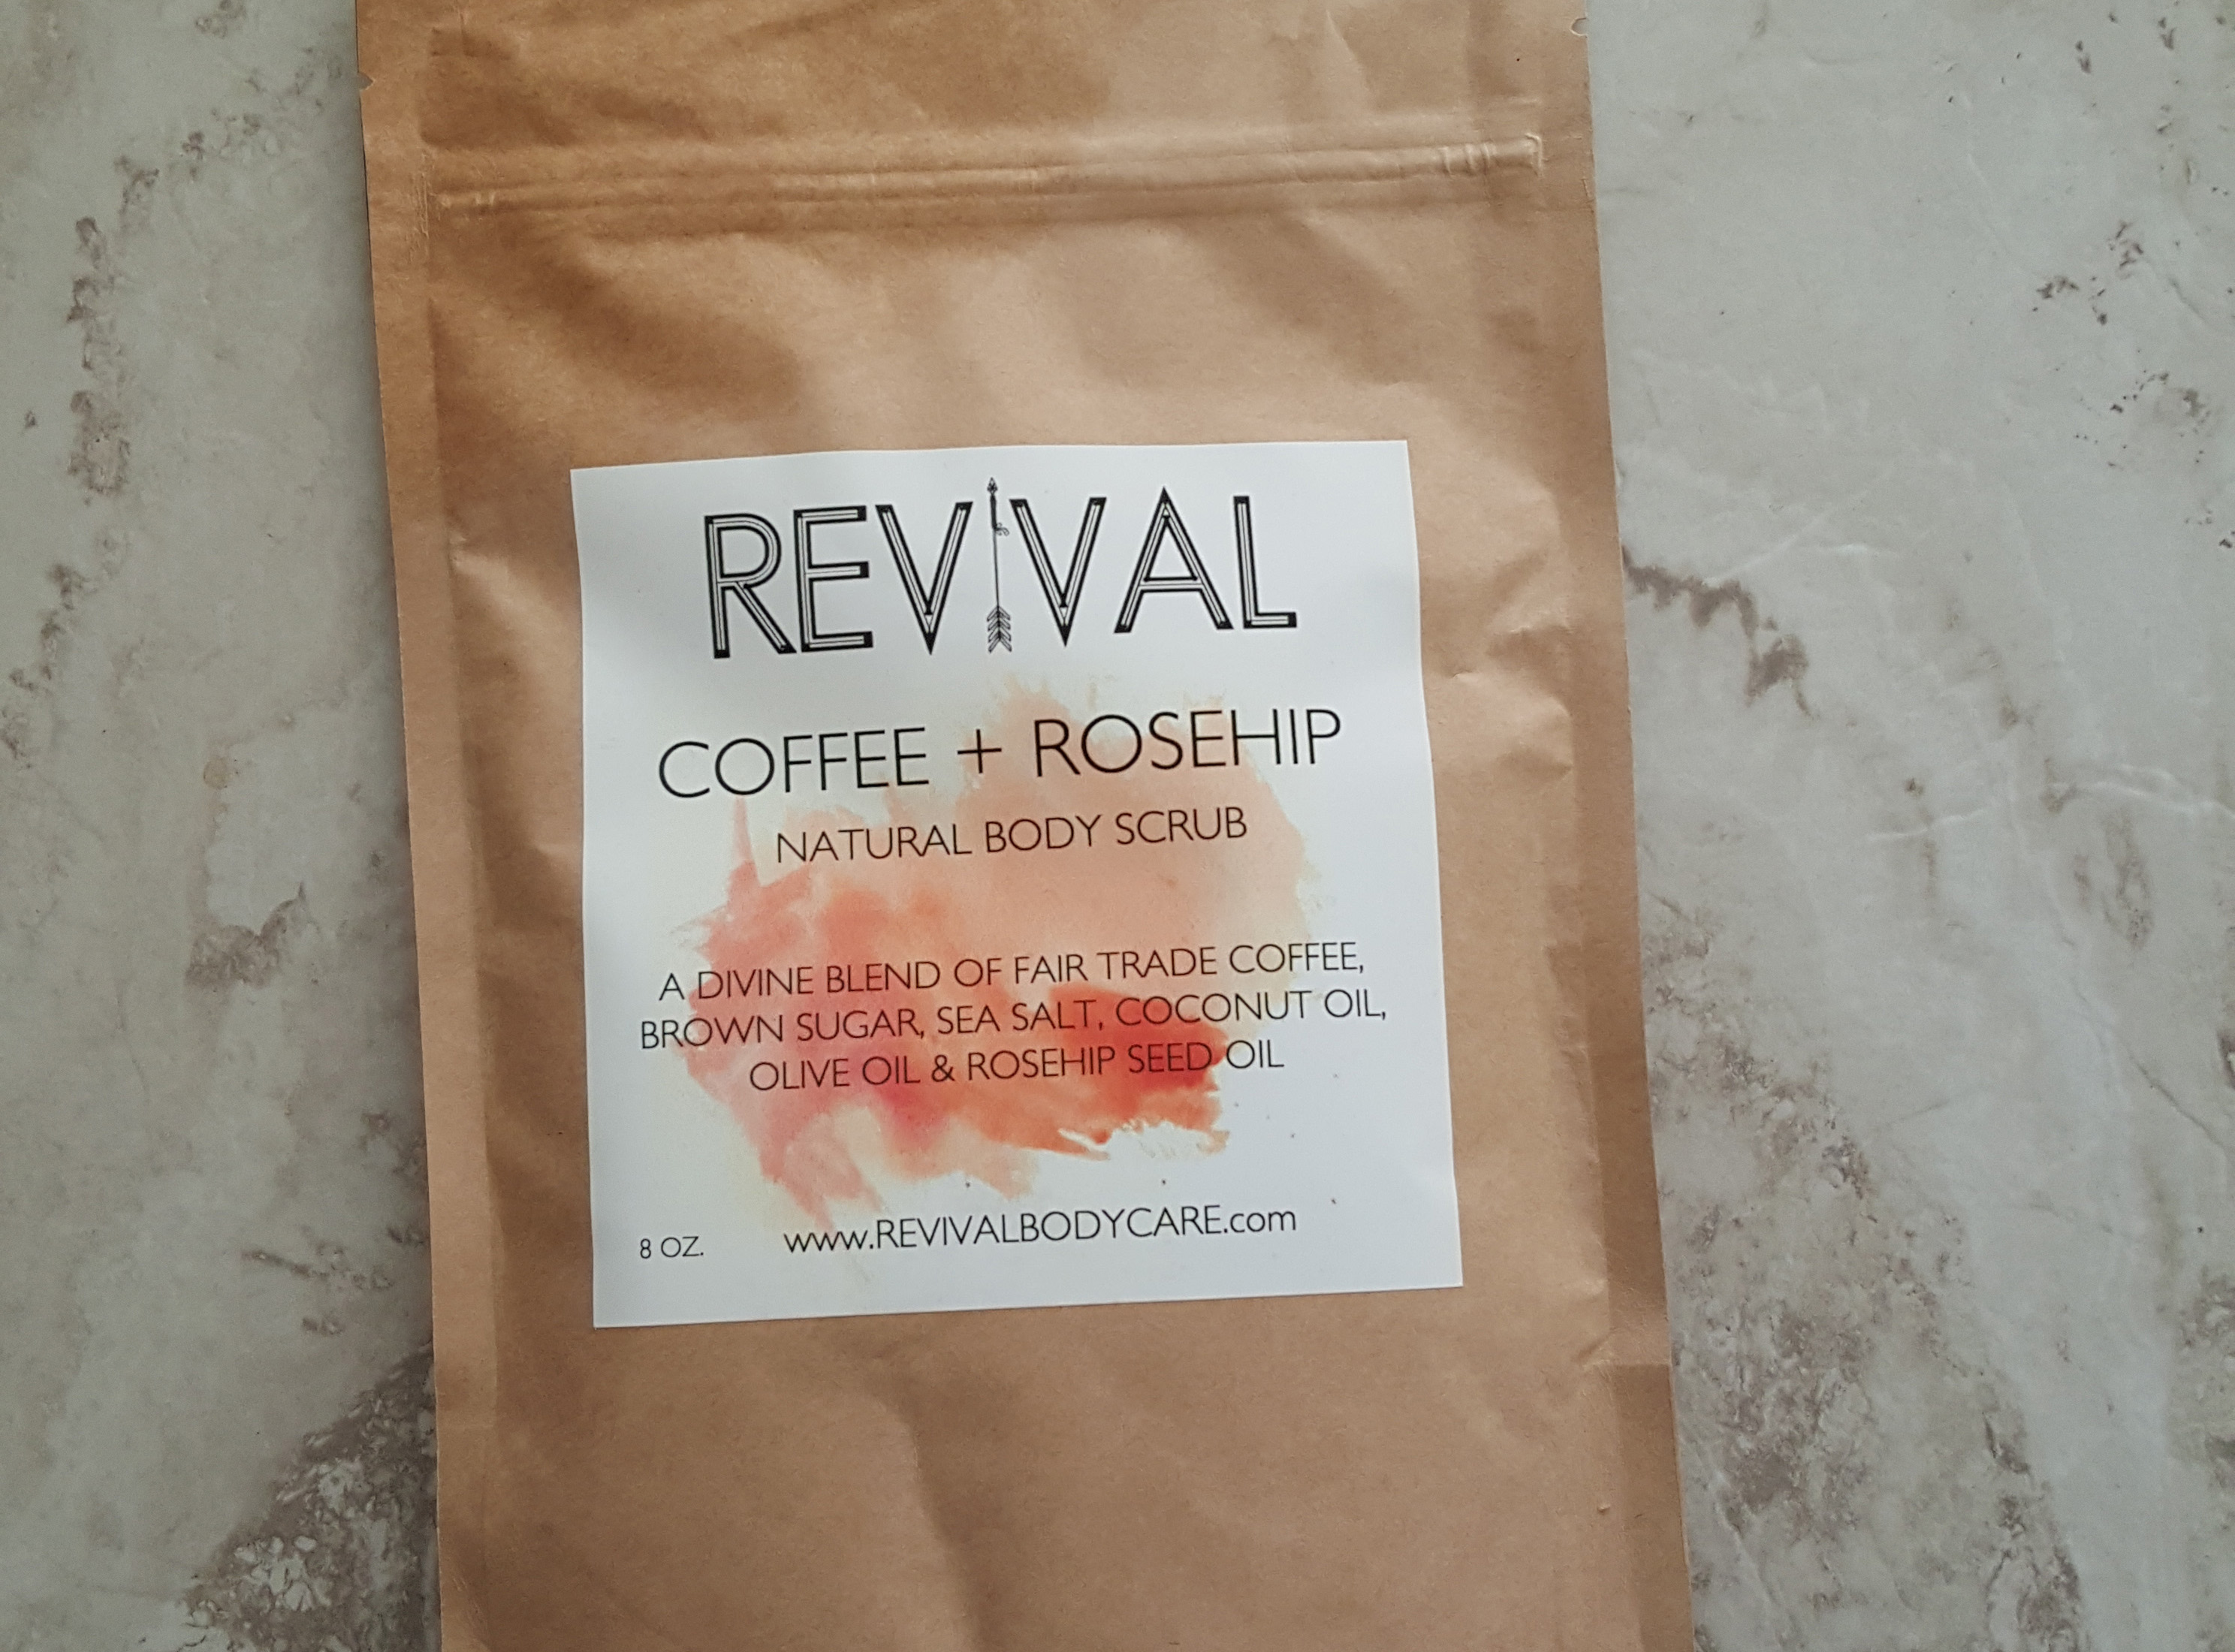 Revival Body Care Coffee + Rosehip Body Scrub